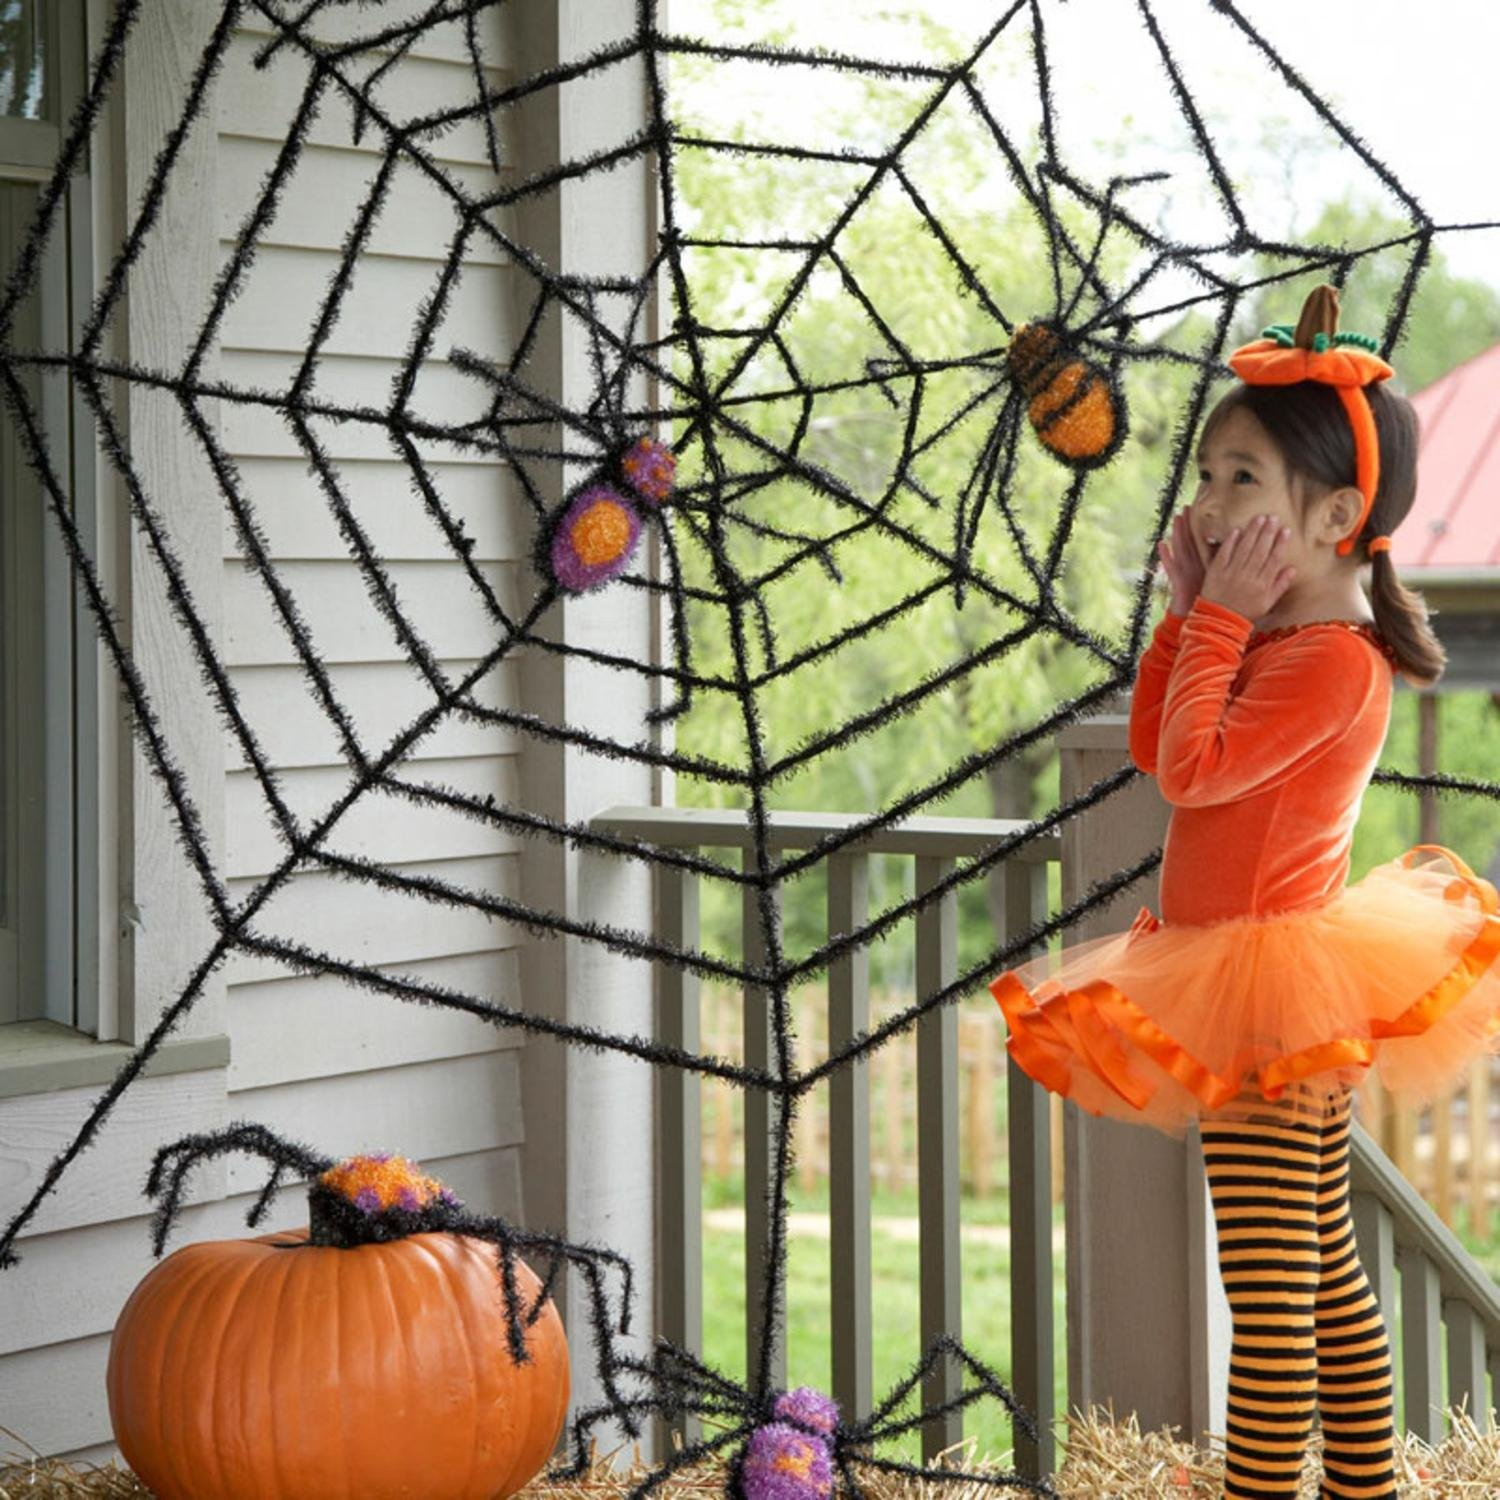 amazoncom giant spider web and giant spiders halloween decoration patio lawn garden